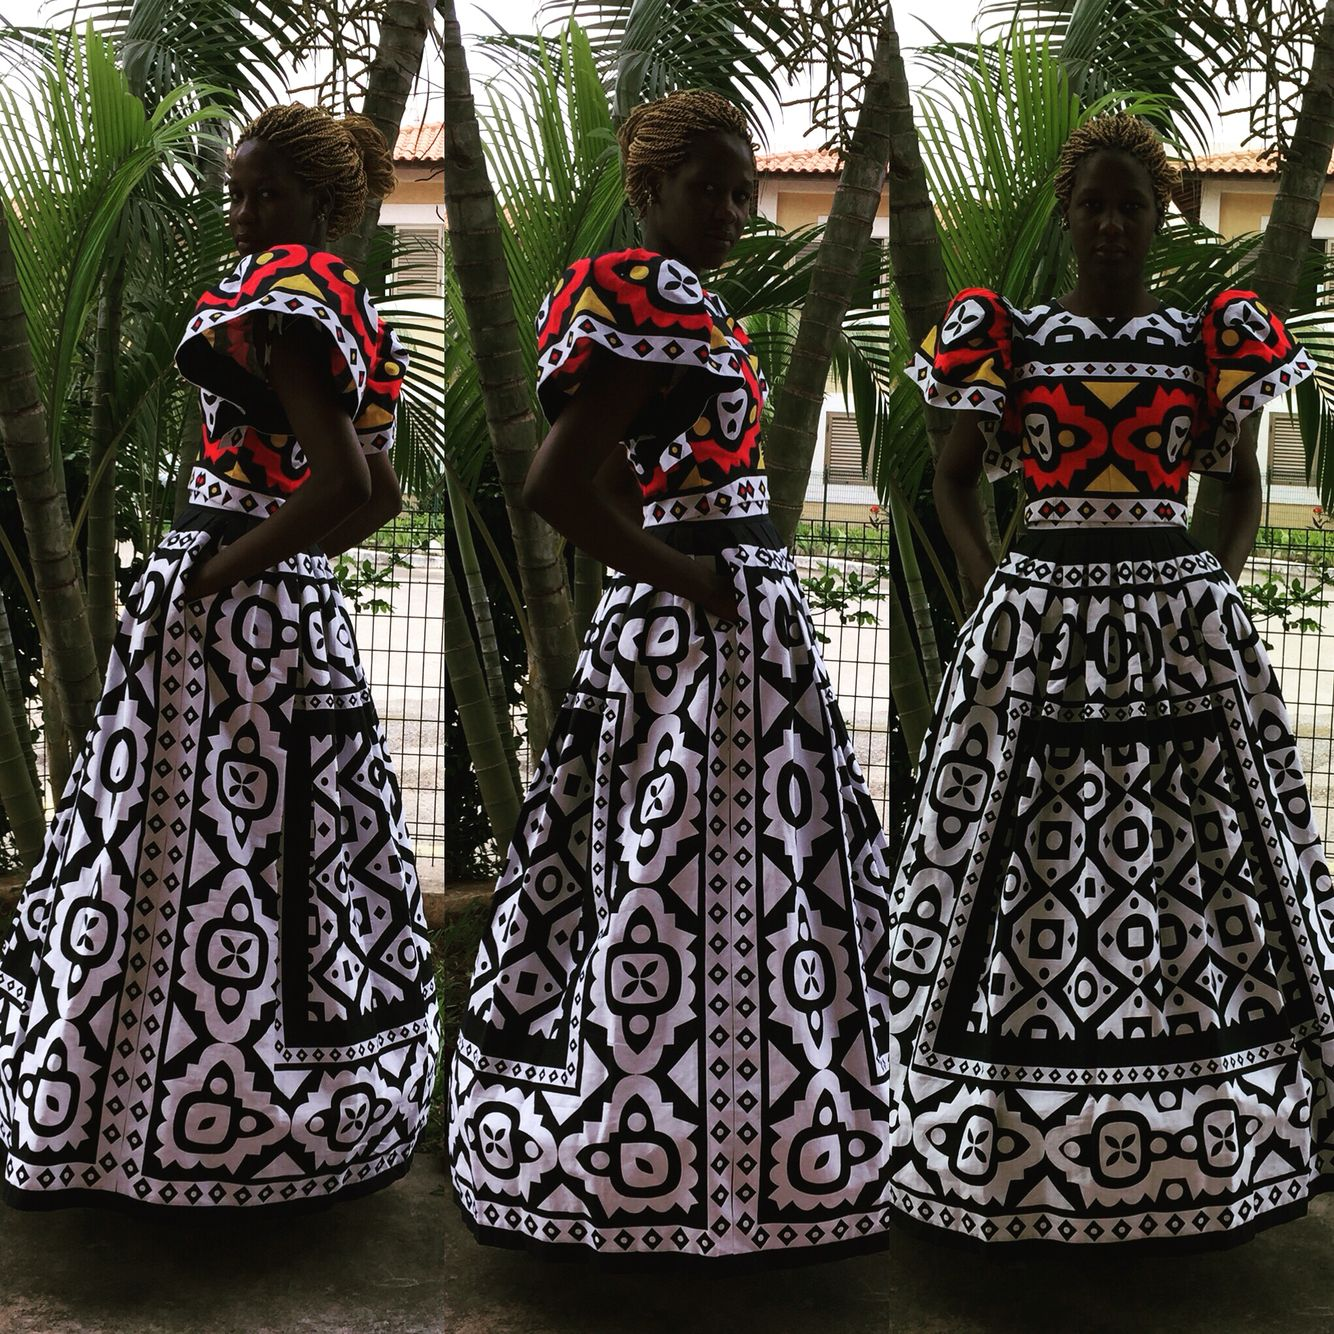 #Angola #fashion # AfricaSet in Samacá, Angolan traditional fabric. #LisetePote design